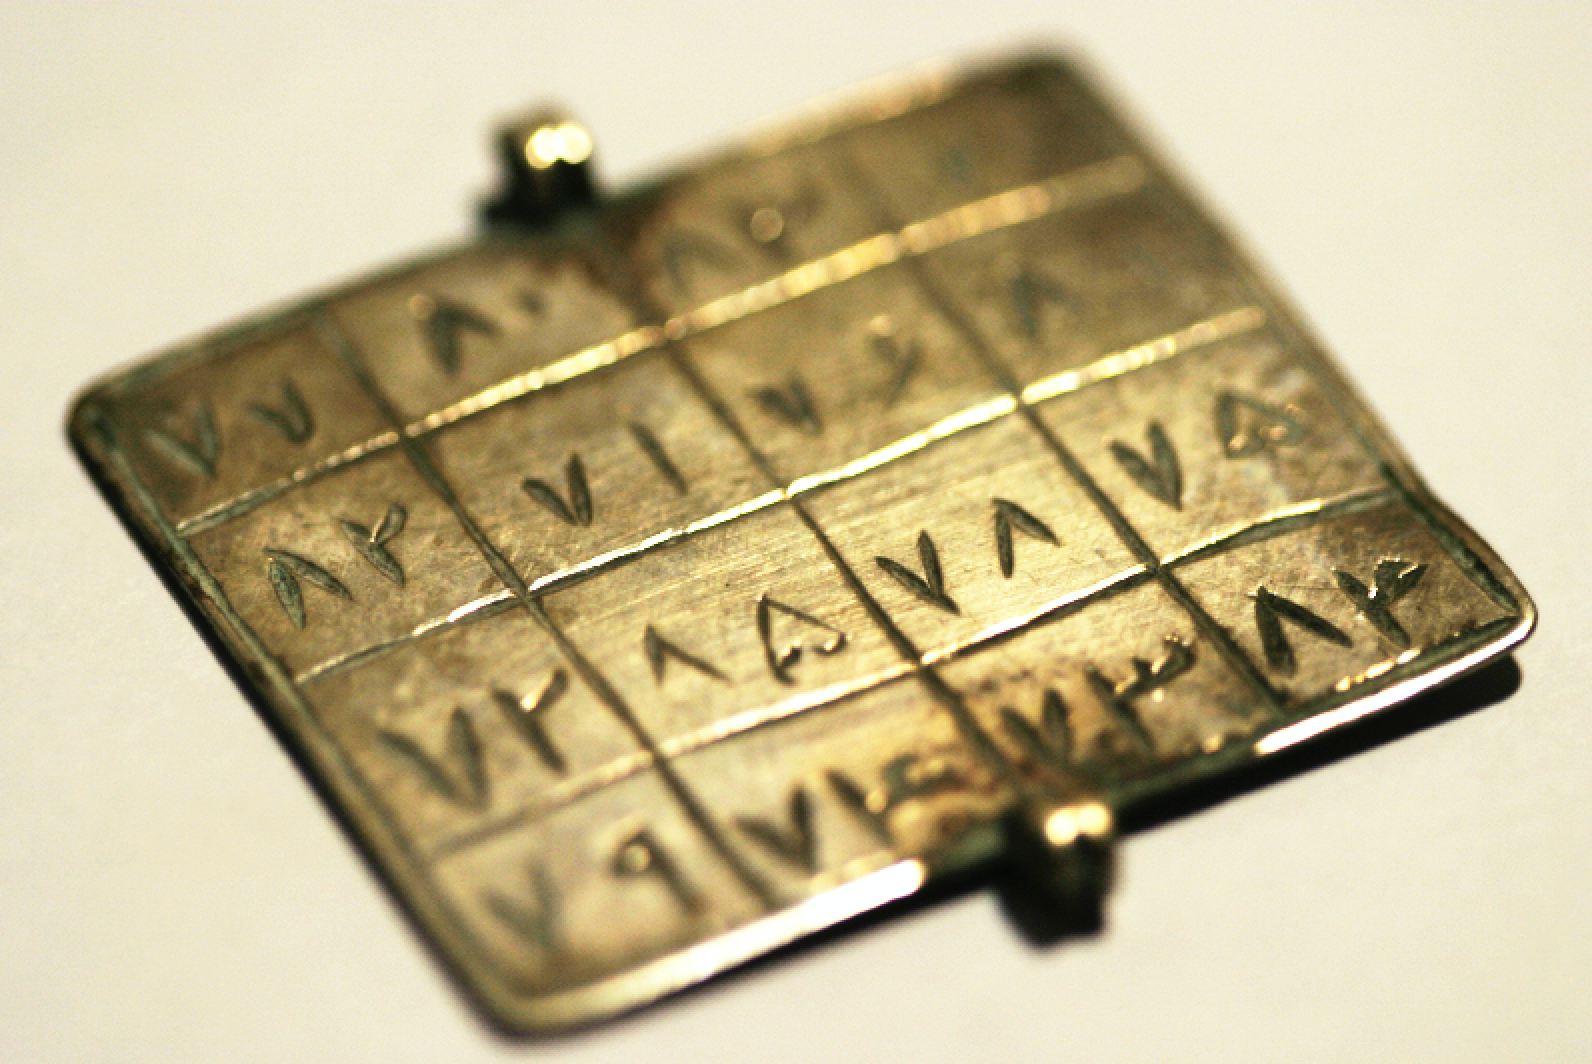 The Healing Talisman - An article by Dr Linda Heaphy